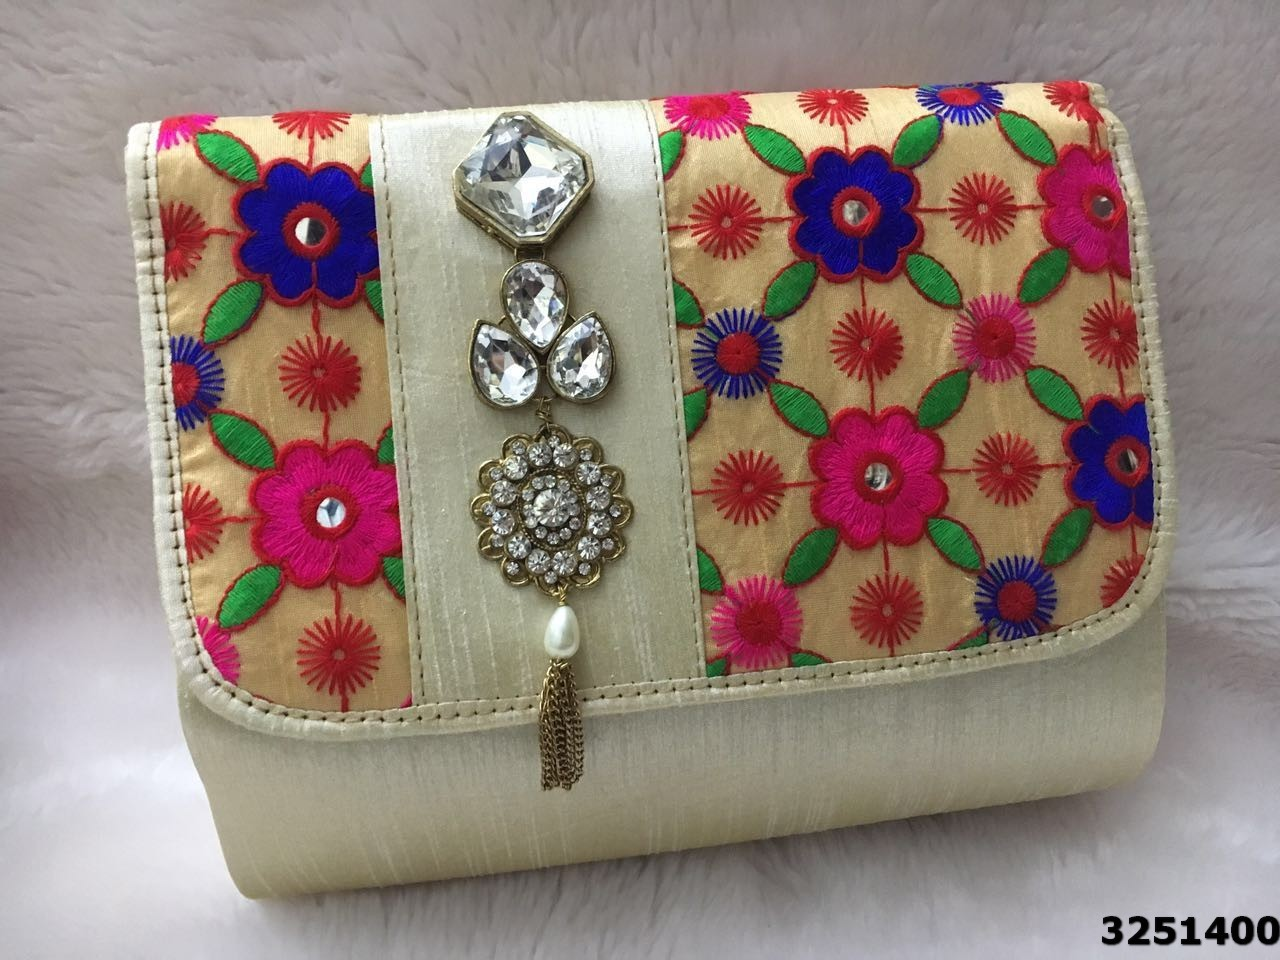 Stylish Patterned And Cool Look Brooch Clutch Bag